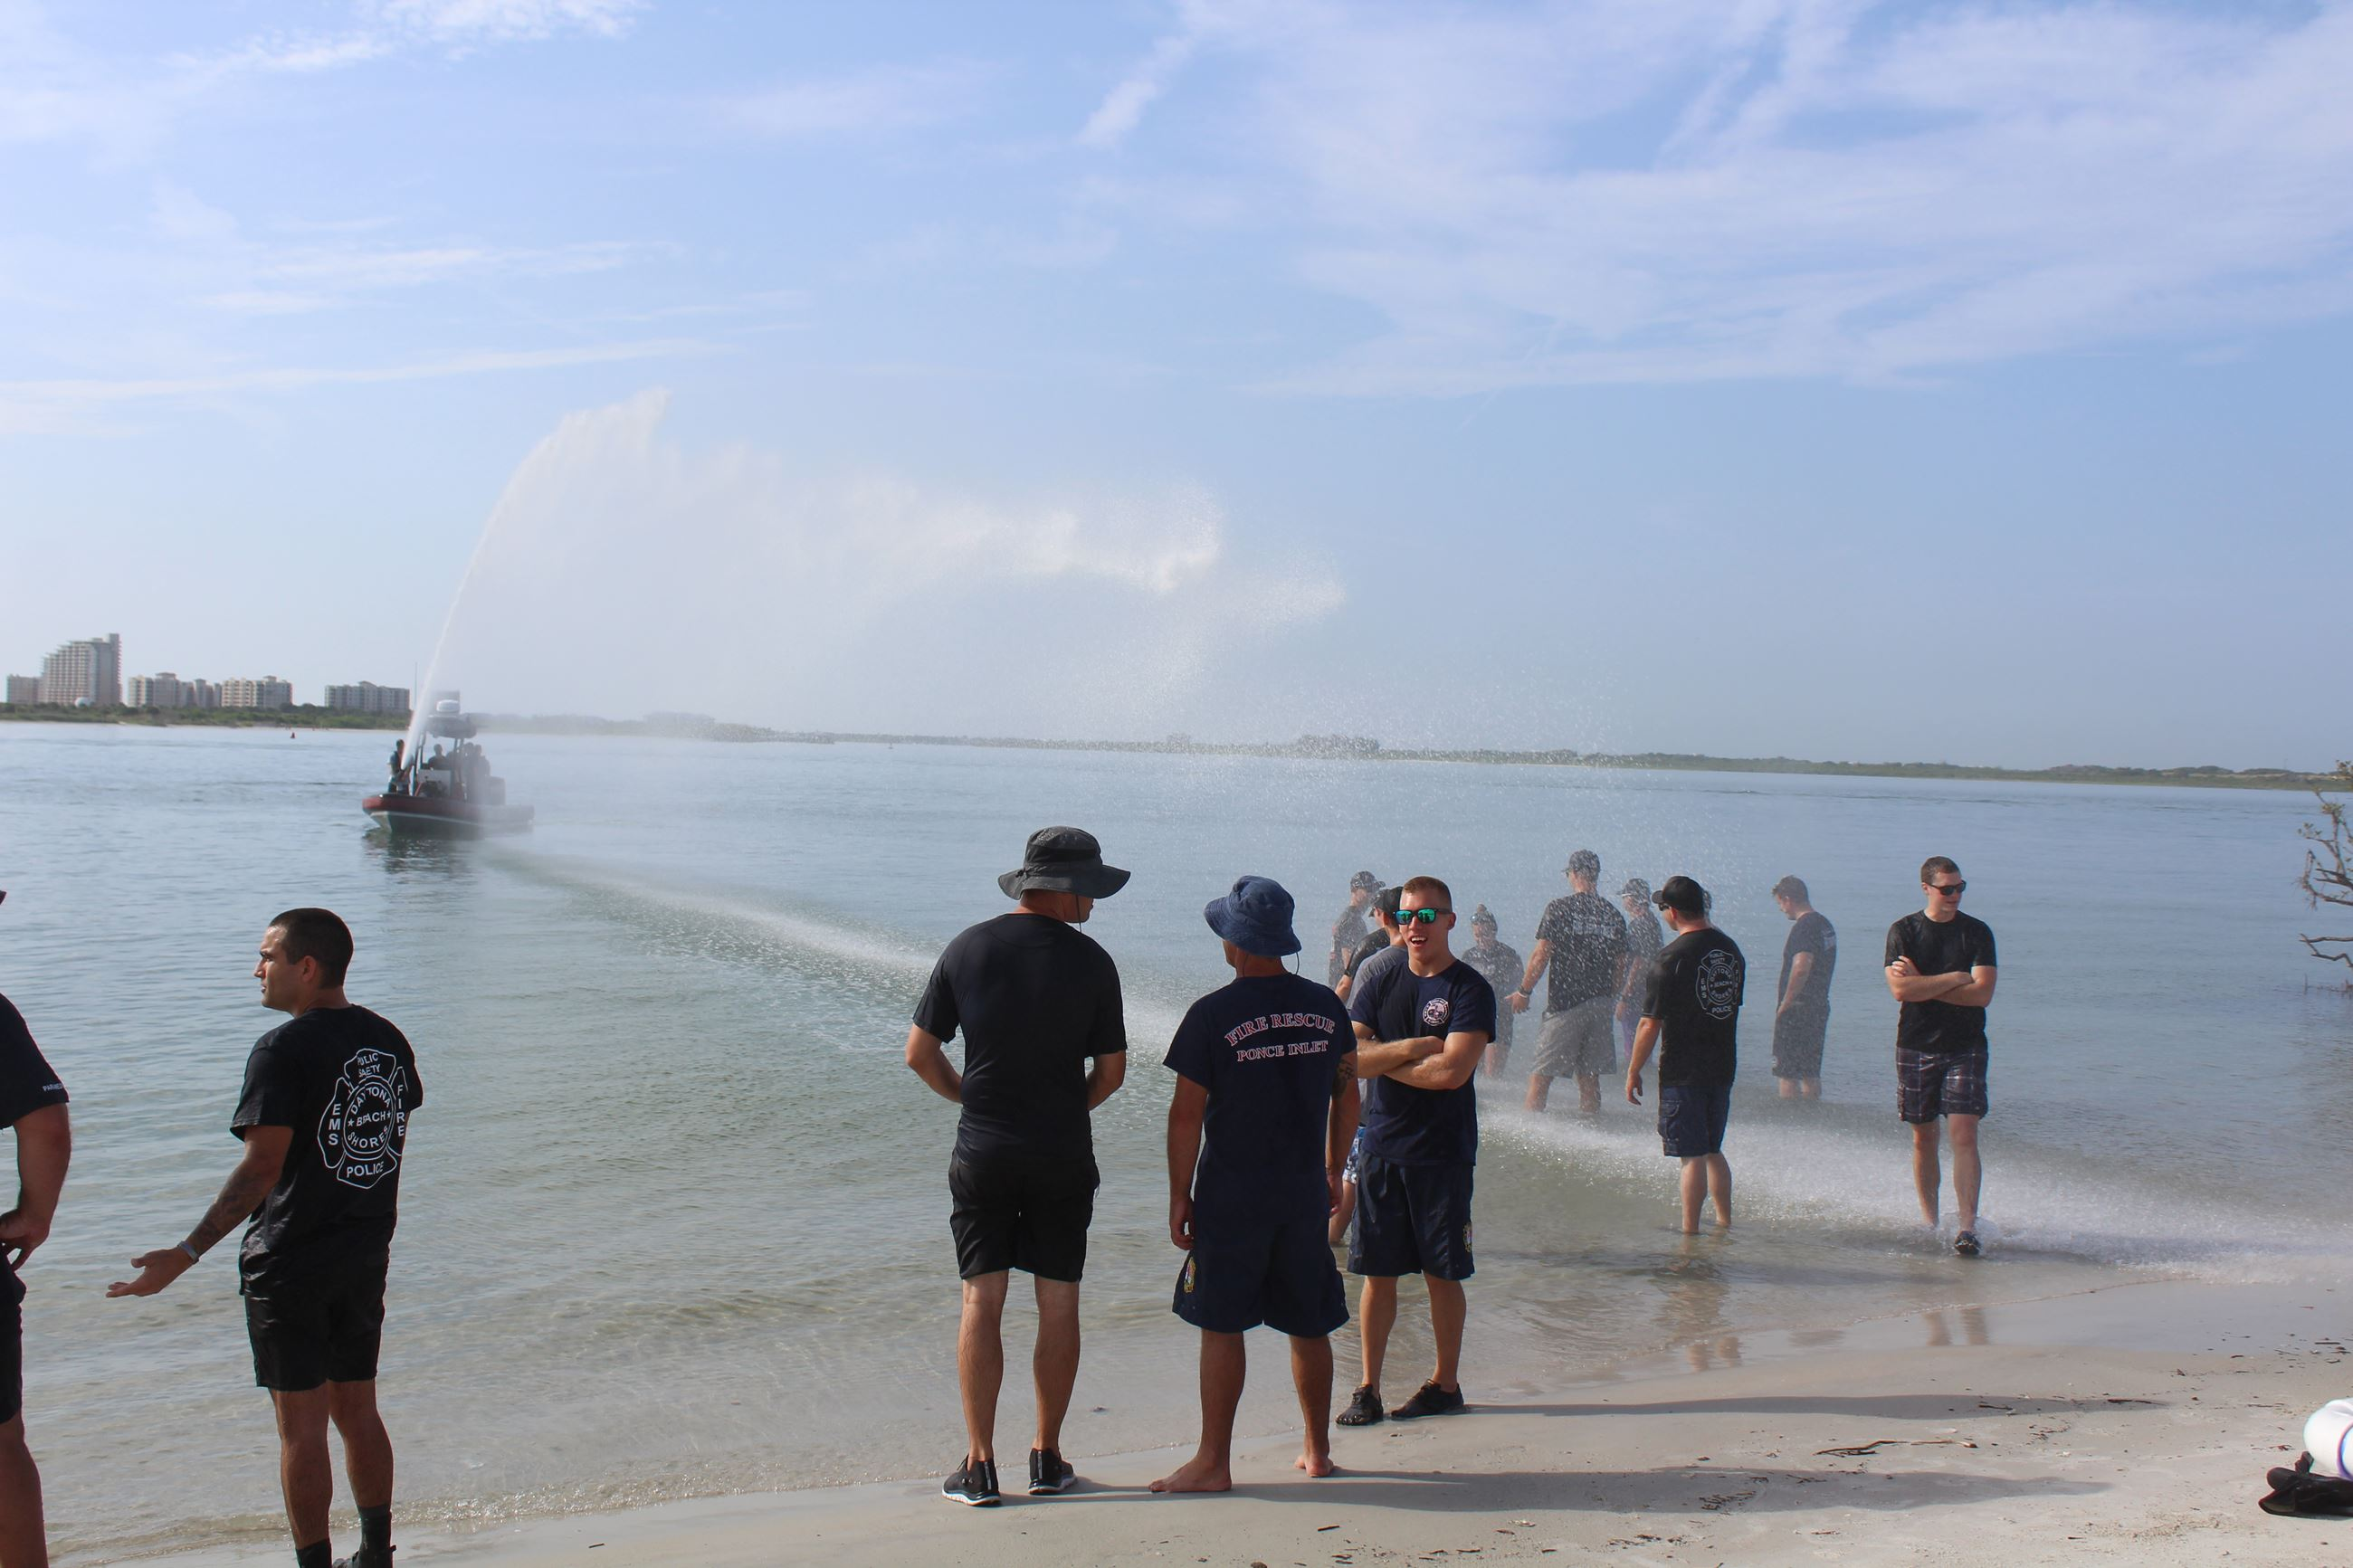 Boat spraying class with water